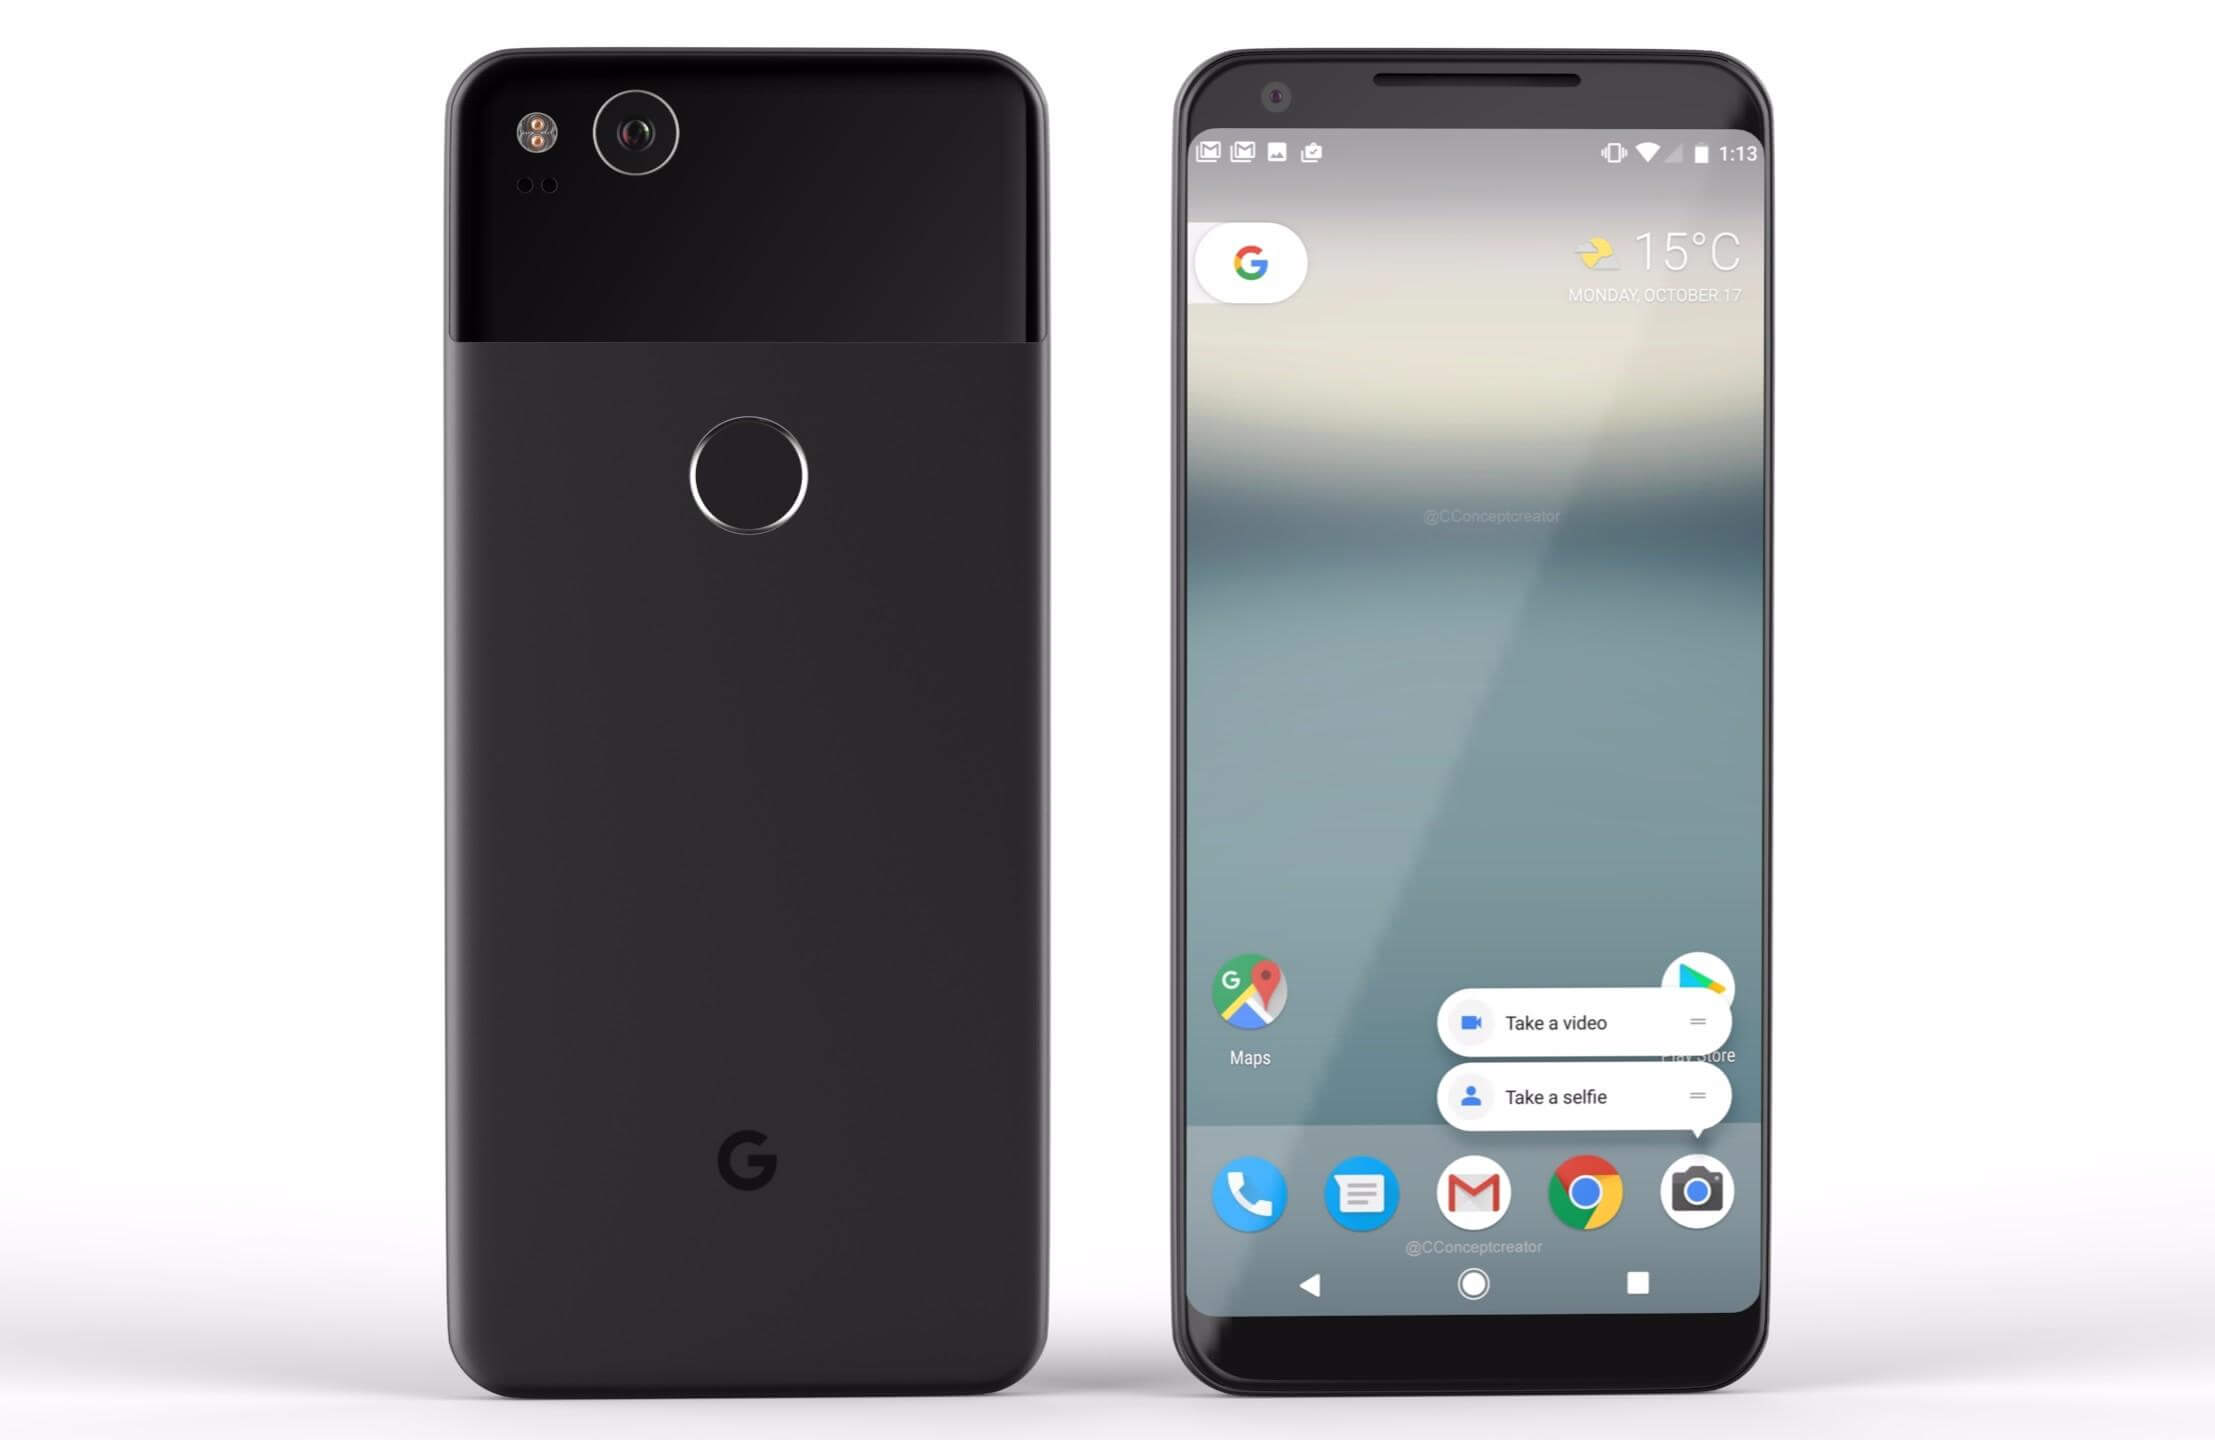 Google Pixel 2 and Pixel 2 XL are finally here! Checkout Specifications, Availability and Pricing.